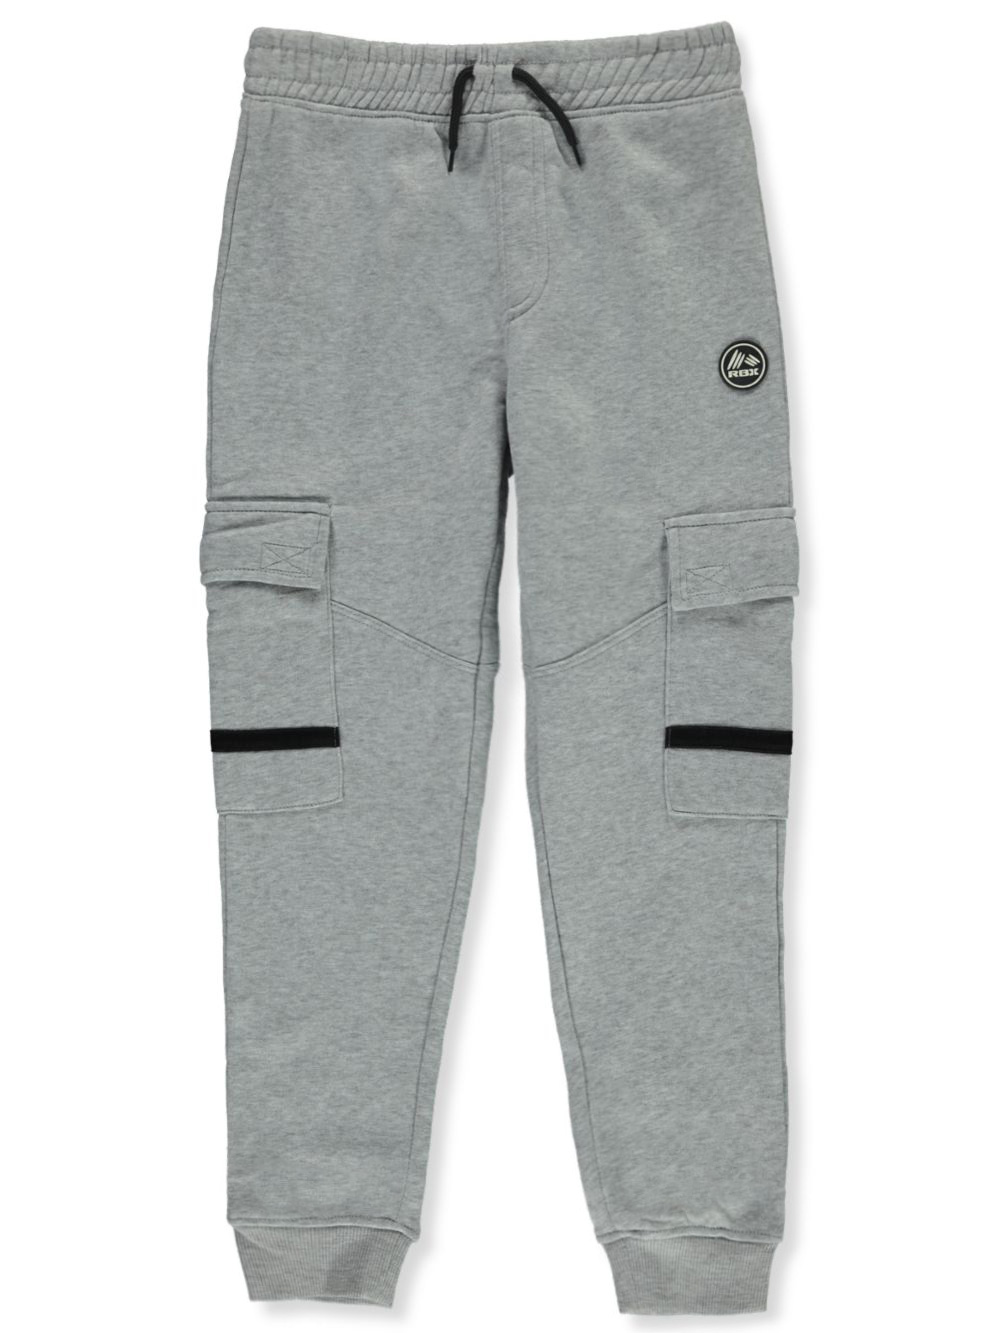 Sweatpants Stripe Accents at Cargo Pockets